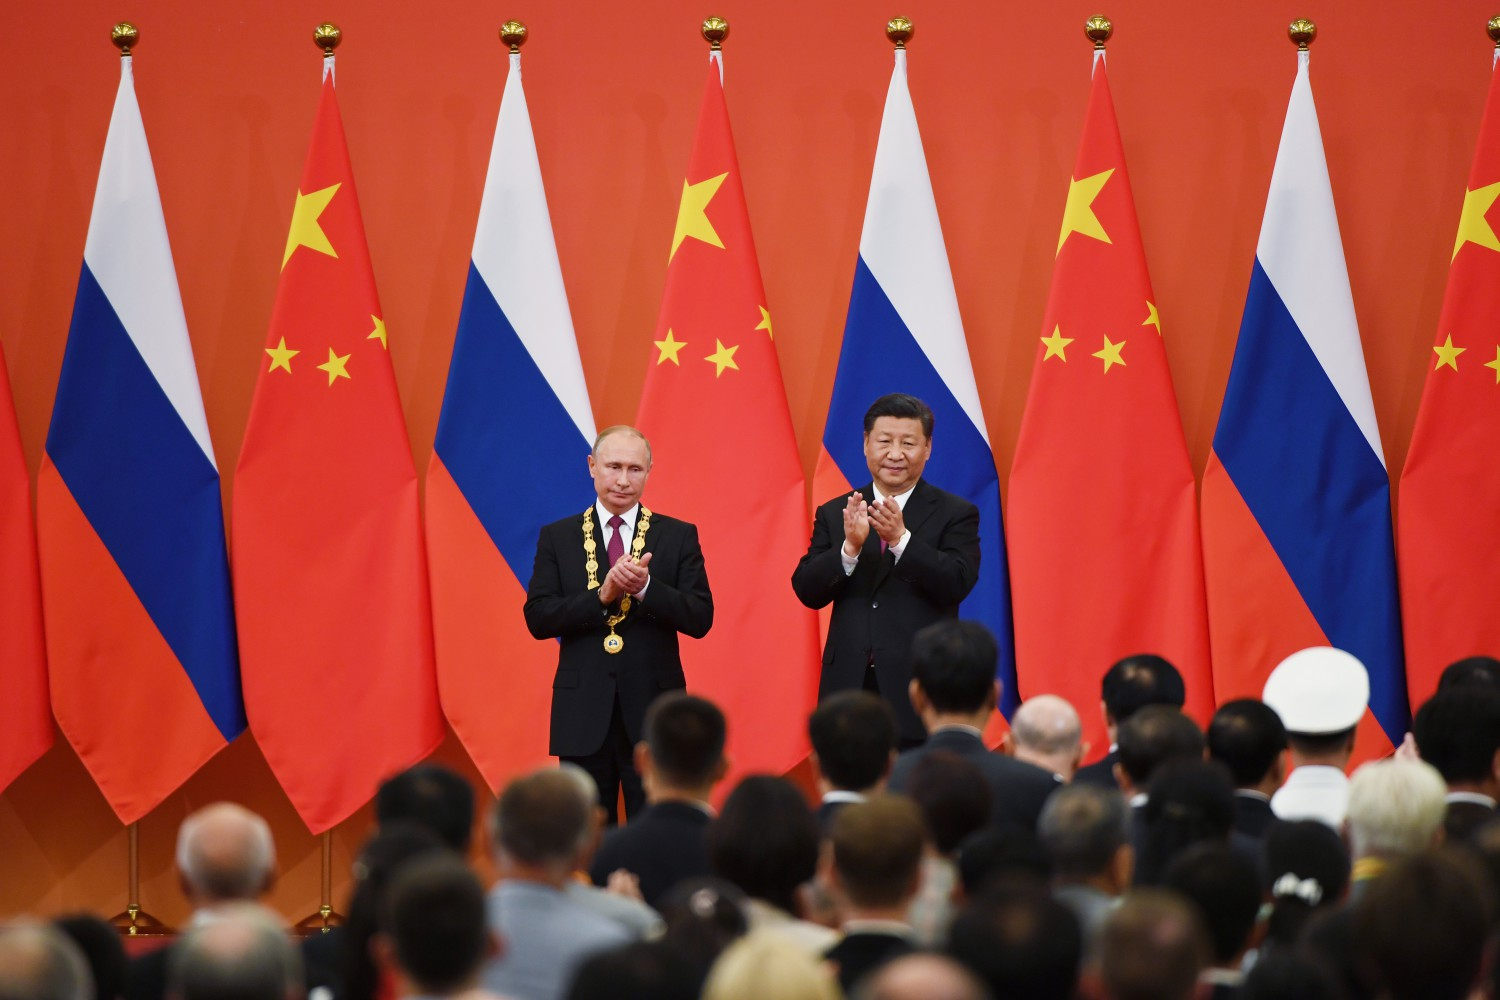 Putin e Xi applaudono al vertice bilaterale in Cina (Getty)